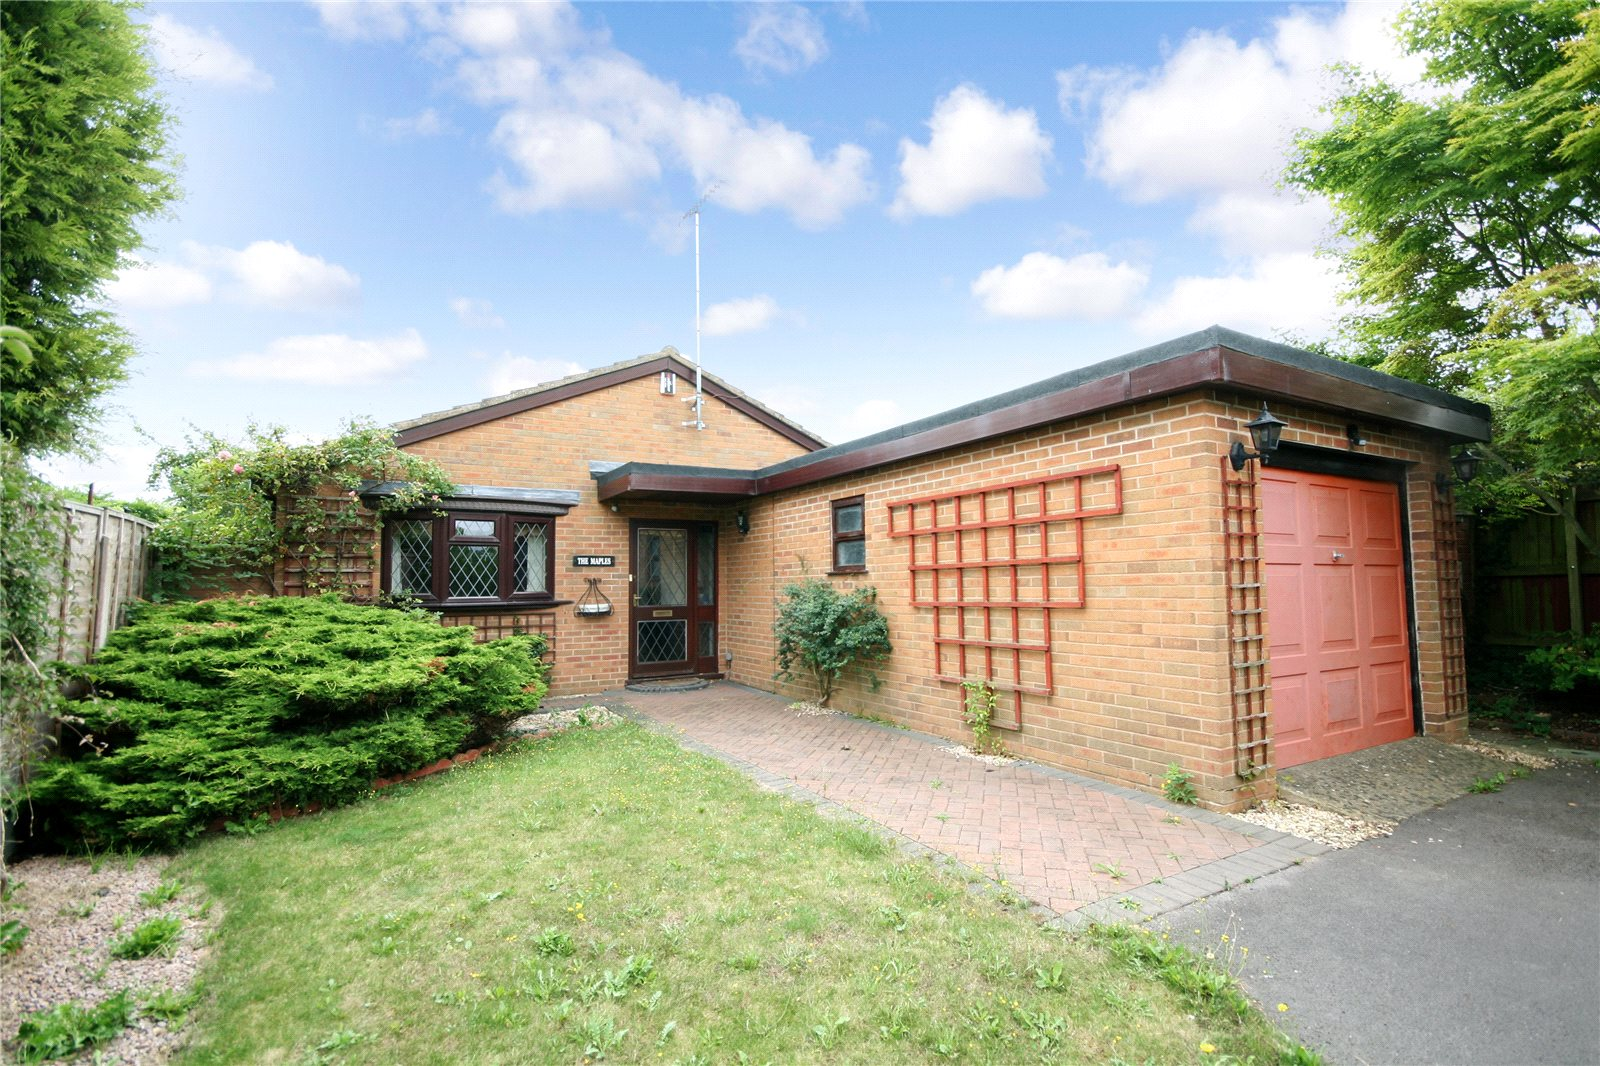 3 Bedrooms Bungalow for sale in St Nicholas Drive Cheltenham GL50